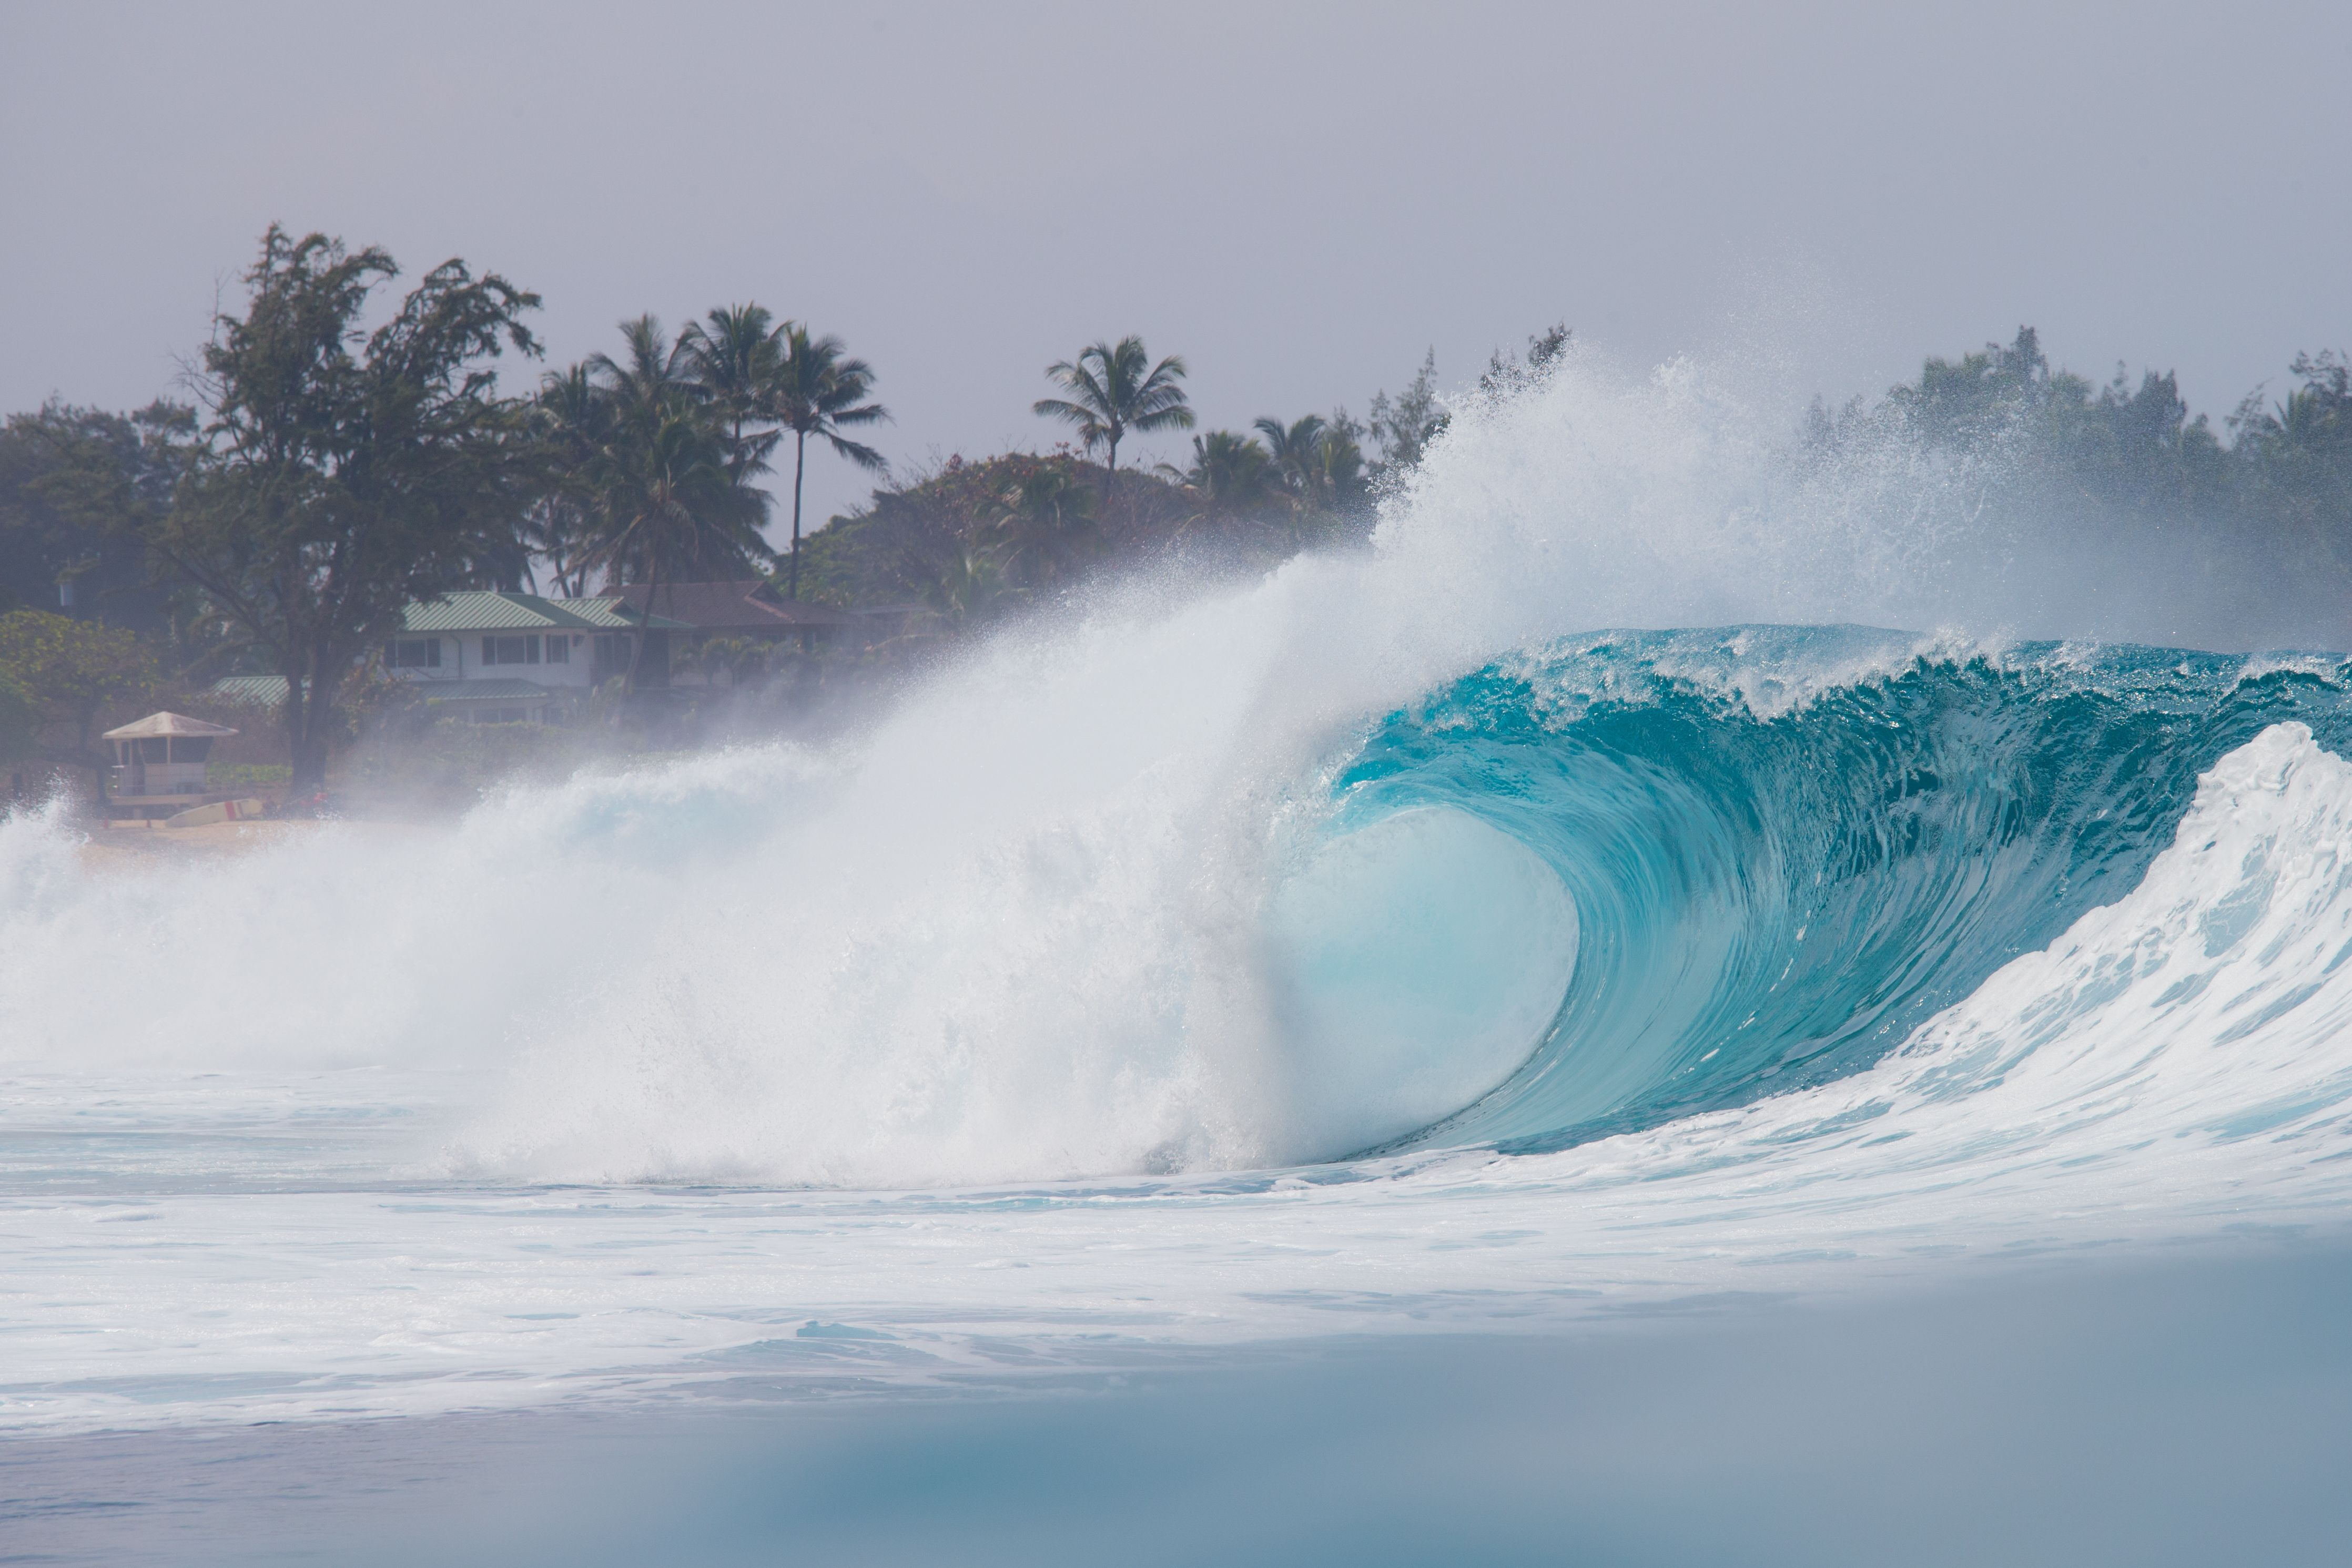 A perfect wave is pictured during the 2017 Volcom Pipe pro at Pipeline on the North shore of Oahu Island in Hawaii.